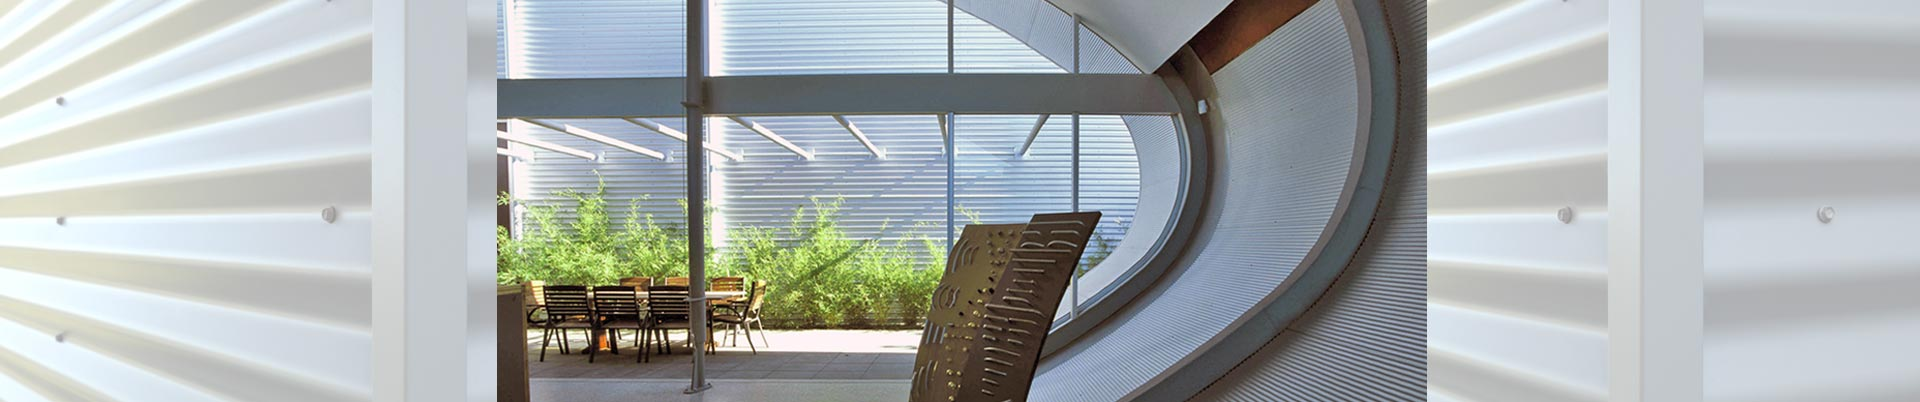 Curved interior sheetmetal